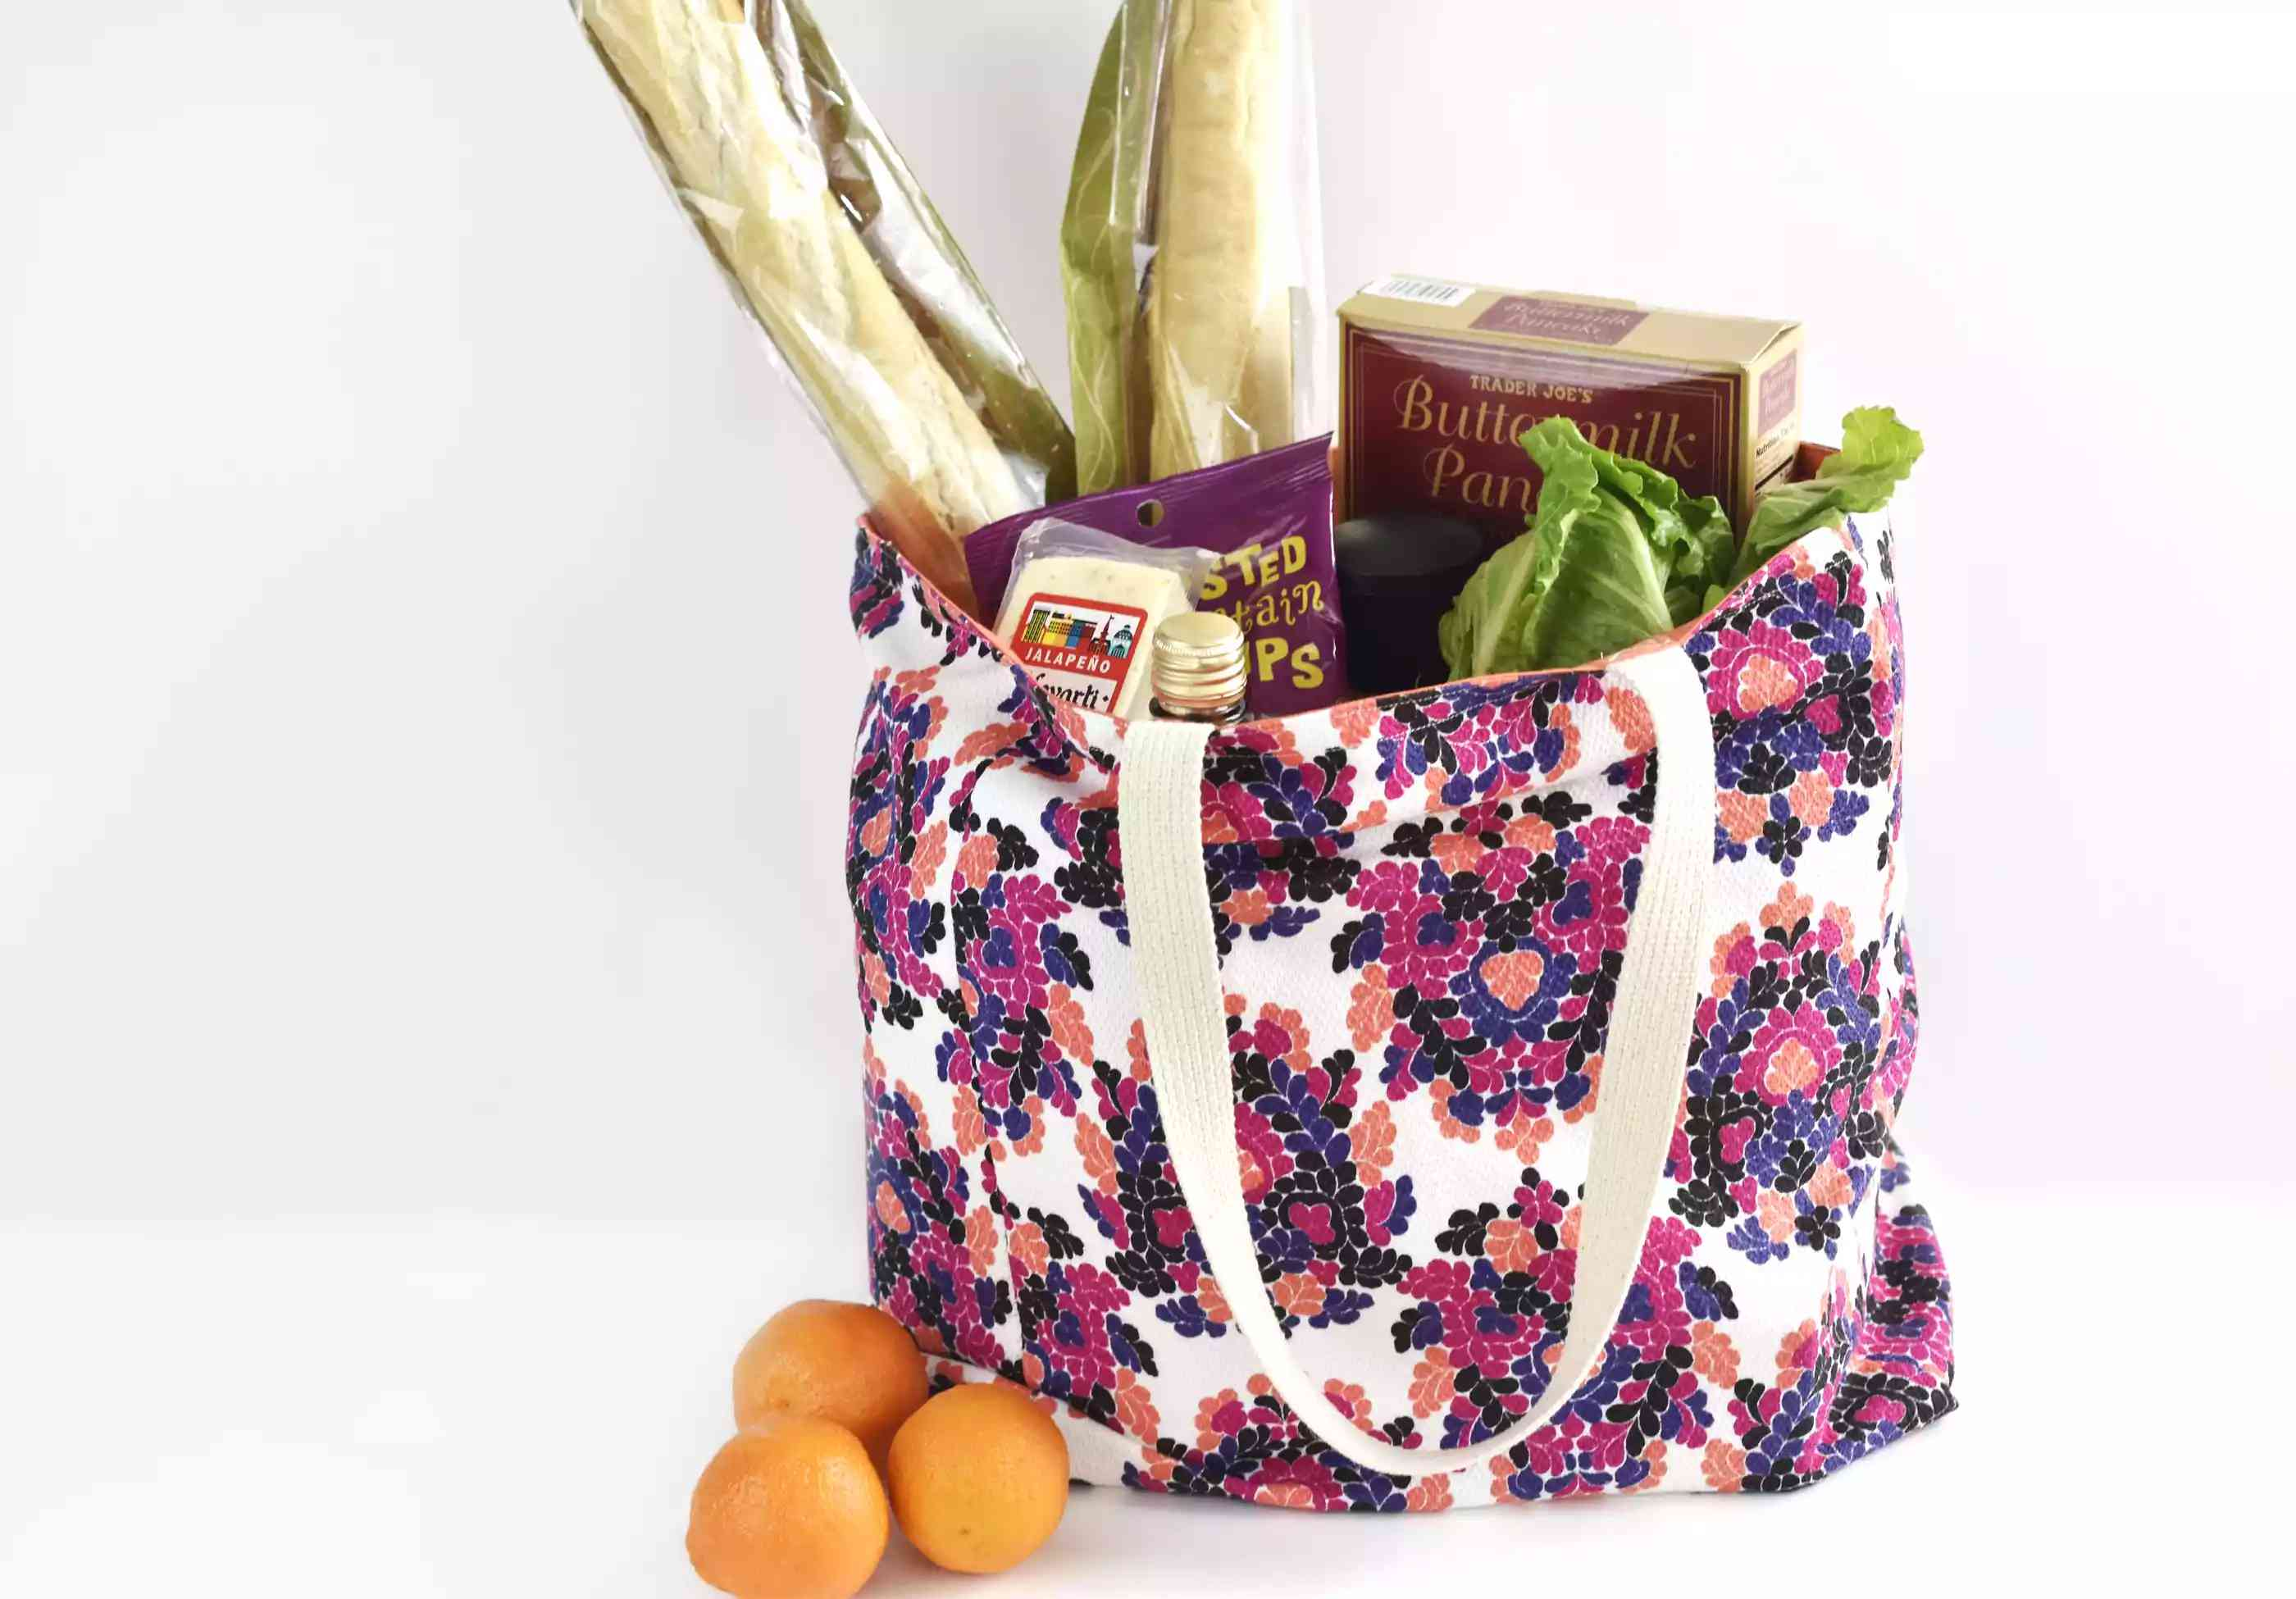 A purple floral reusable grocery bag filled with groceries